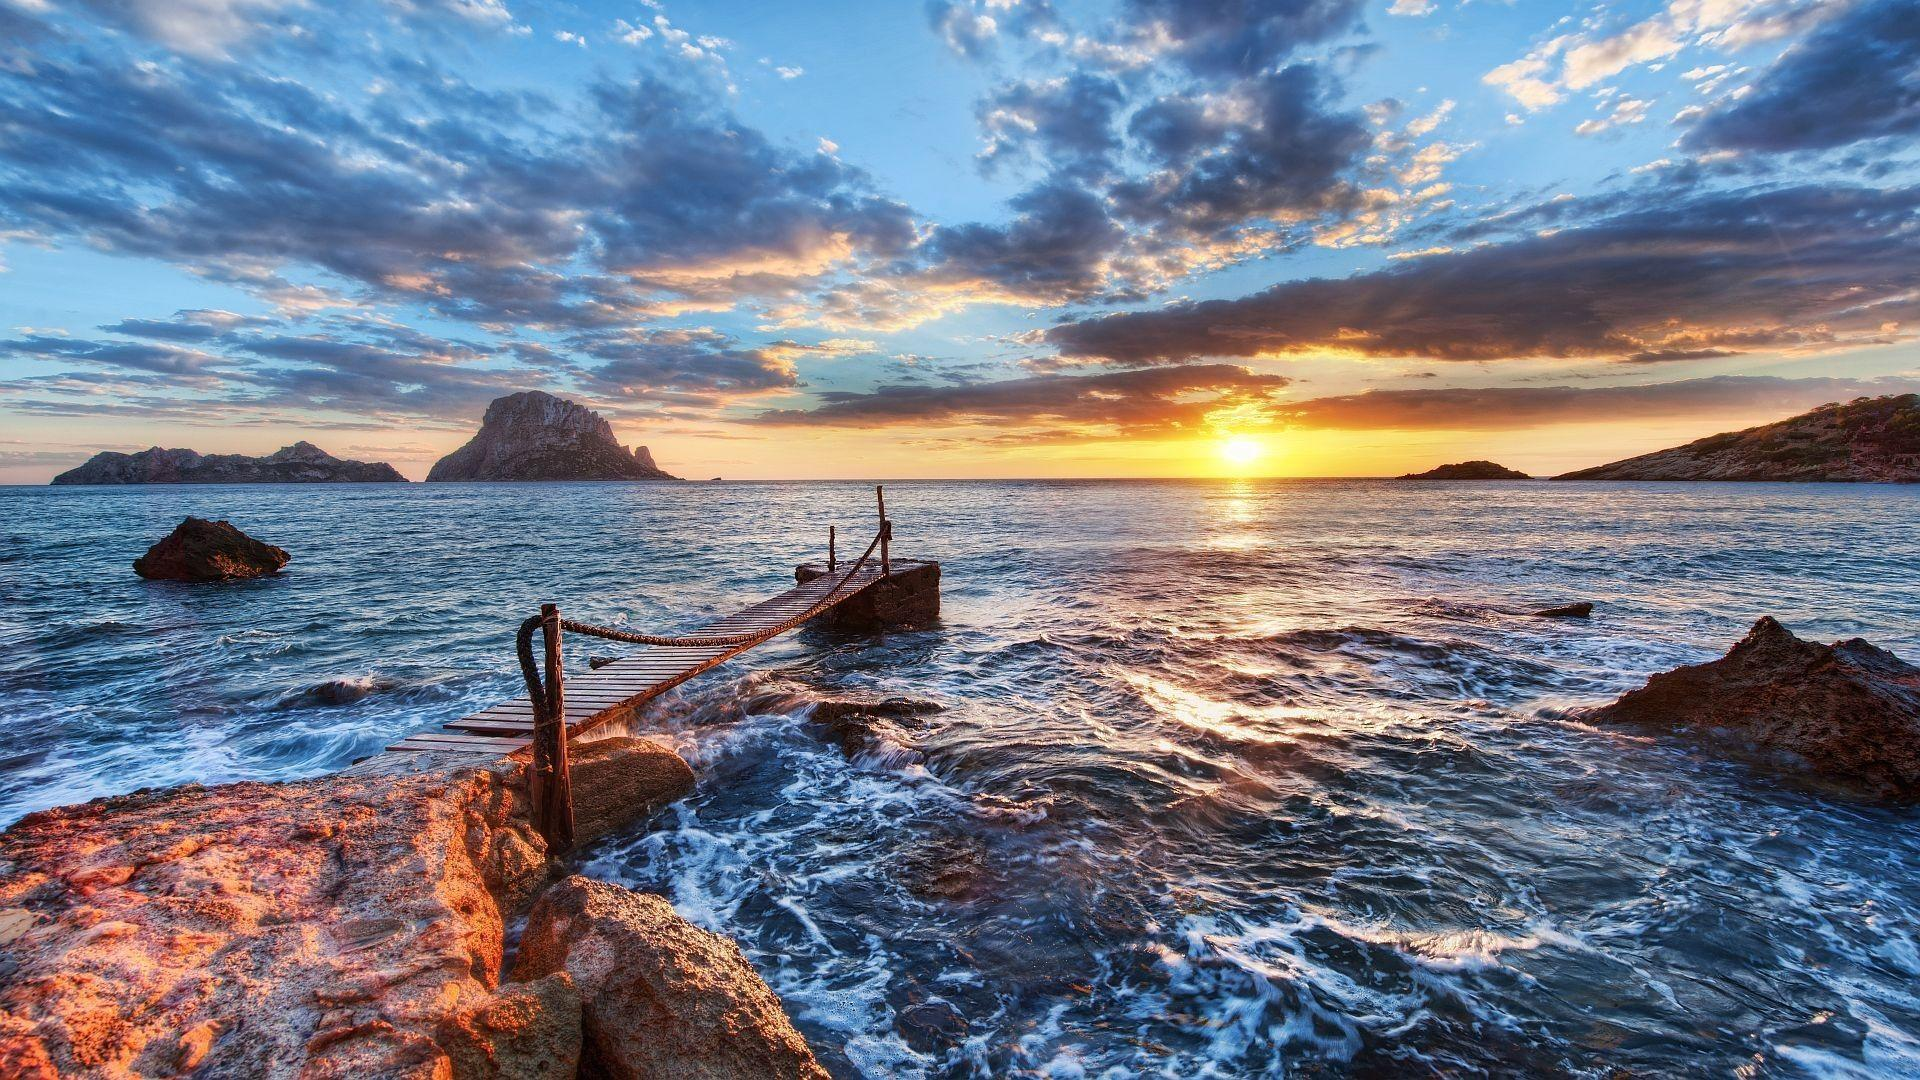 Ibiza Wallpapers, Amazing HQ Definition Ibiza Pictures